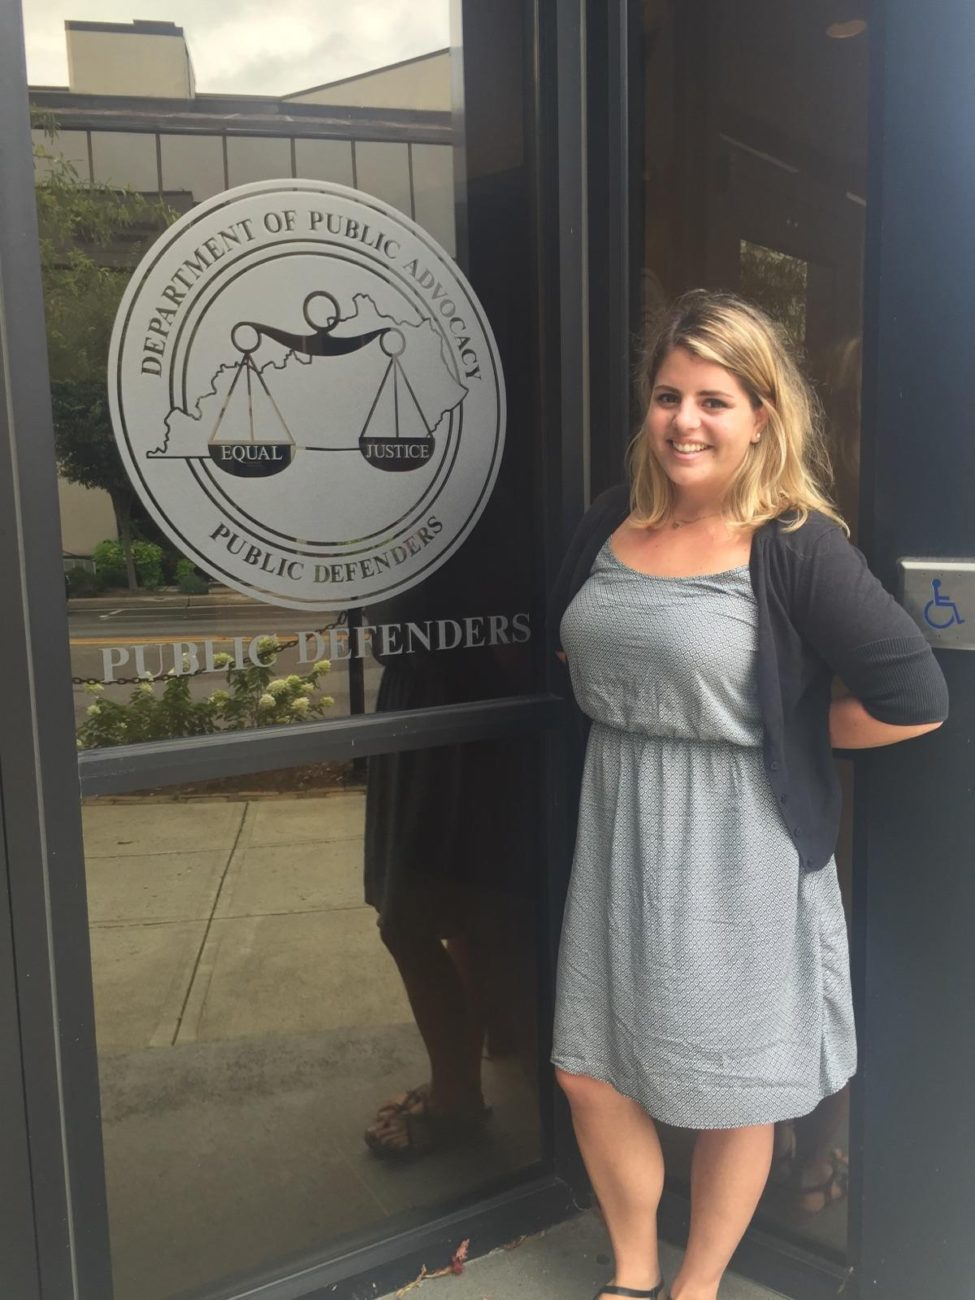 How to Find a Good Criminal Defense Law Firm